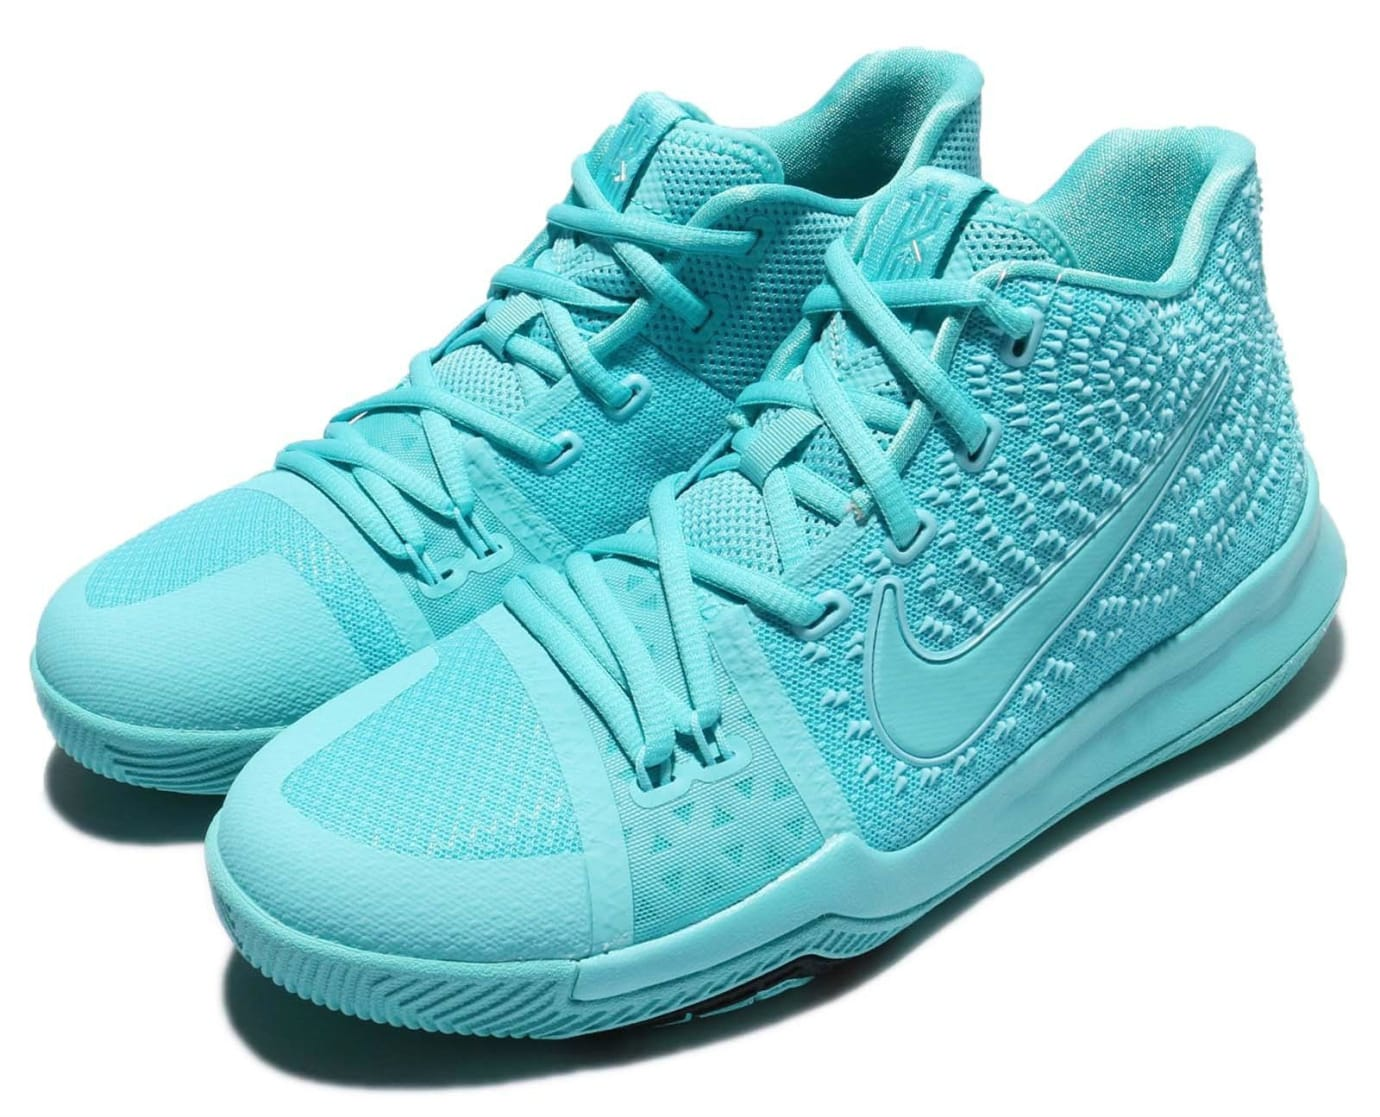 Nike Kyrie 3 GS Aqua Release Date Lateral 859466-401